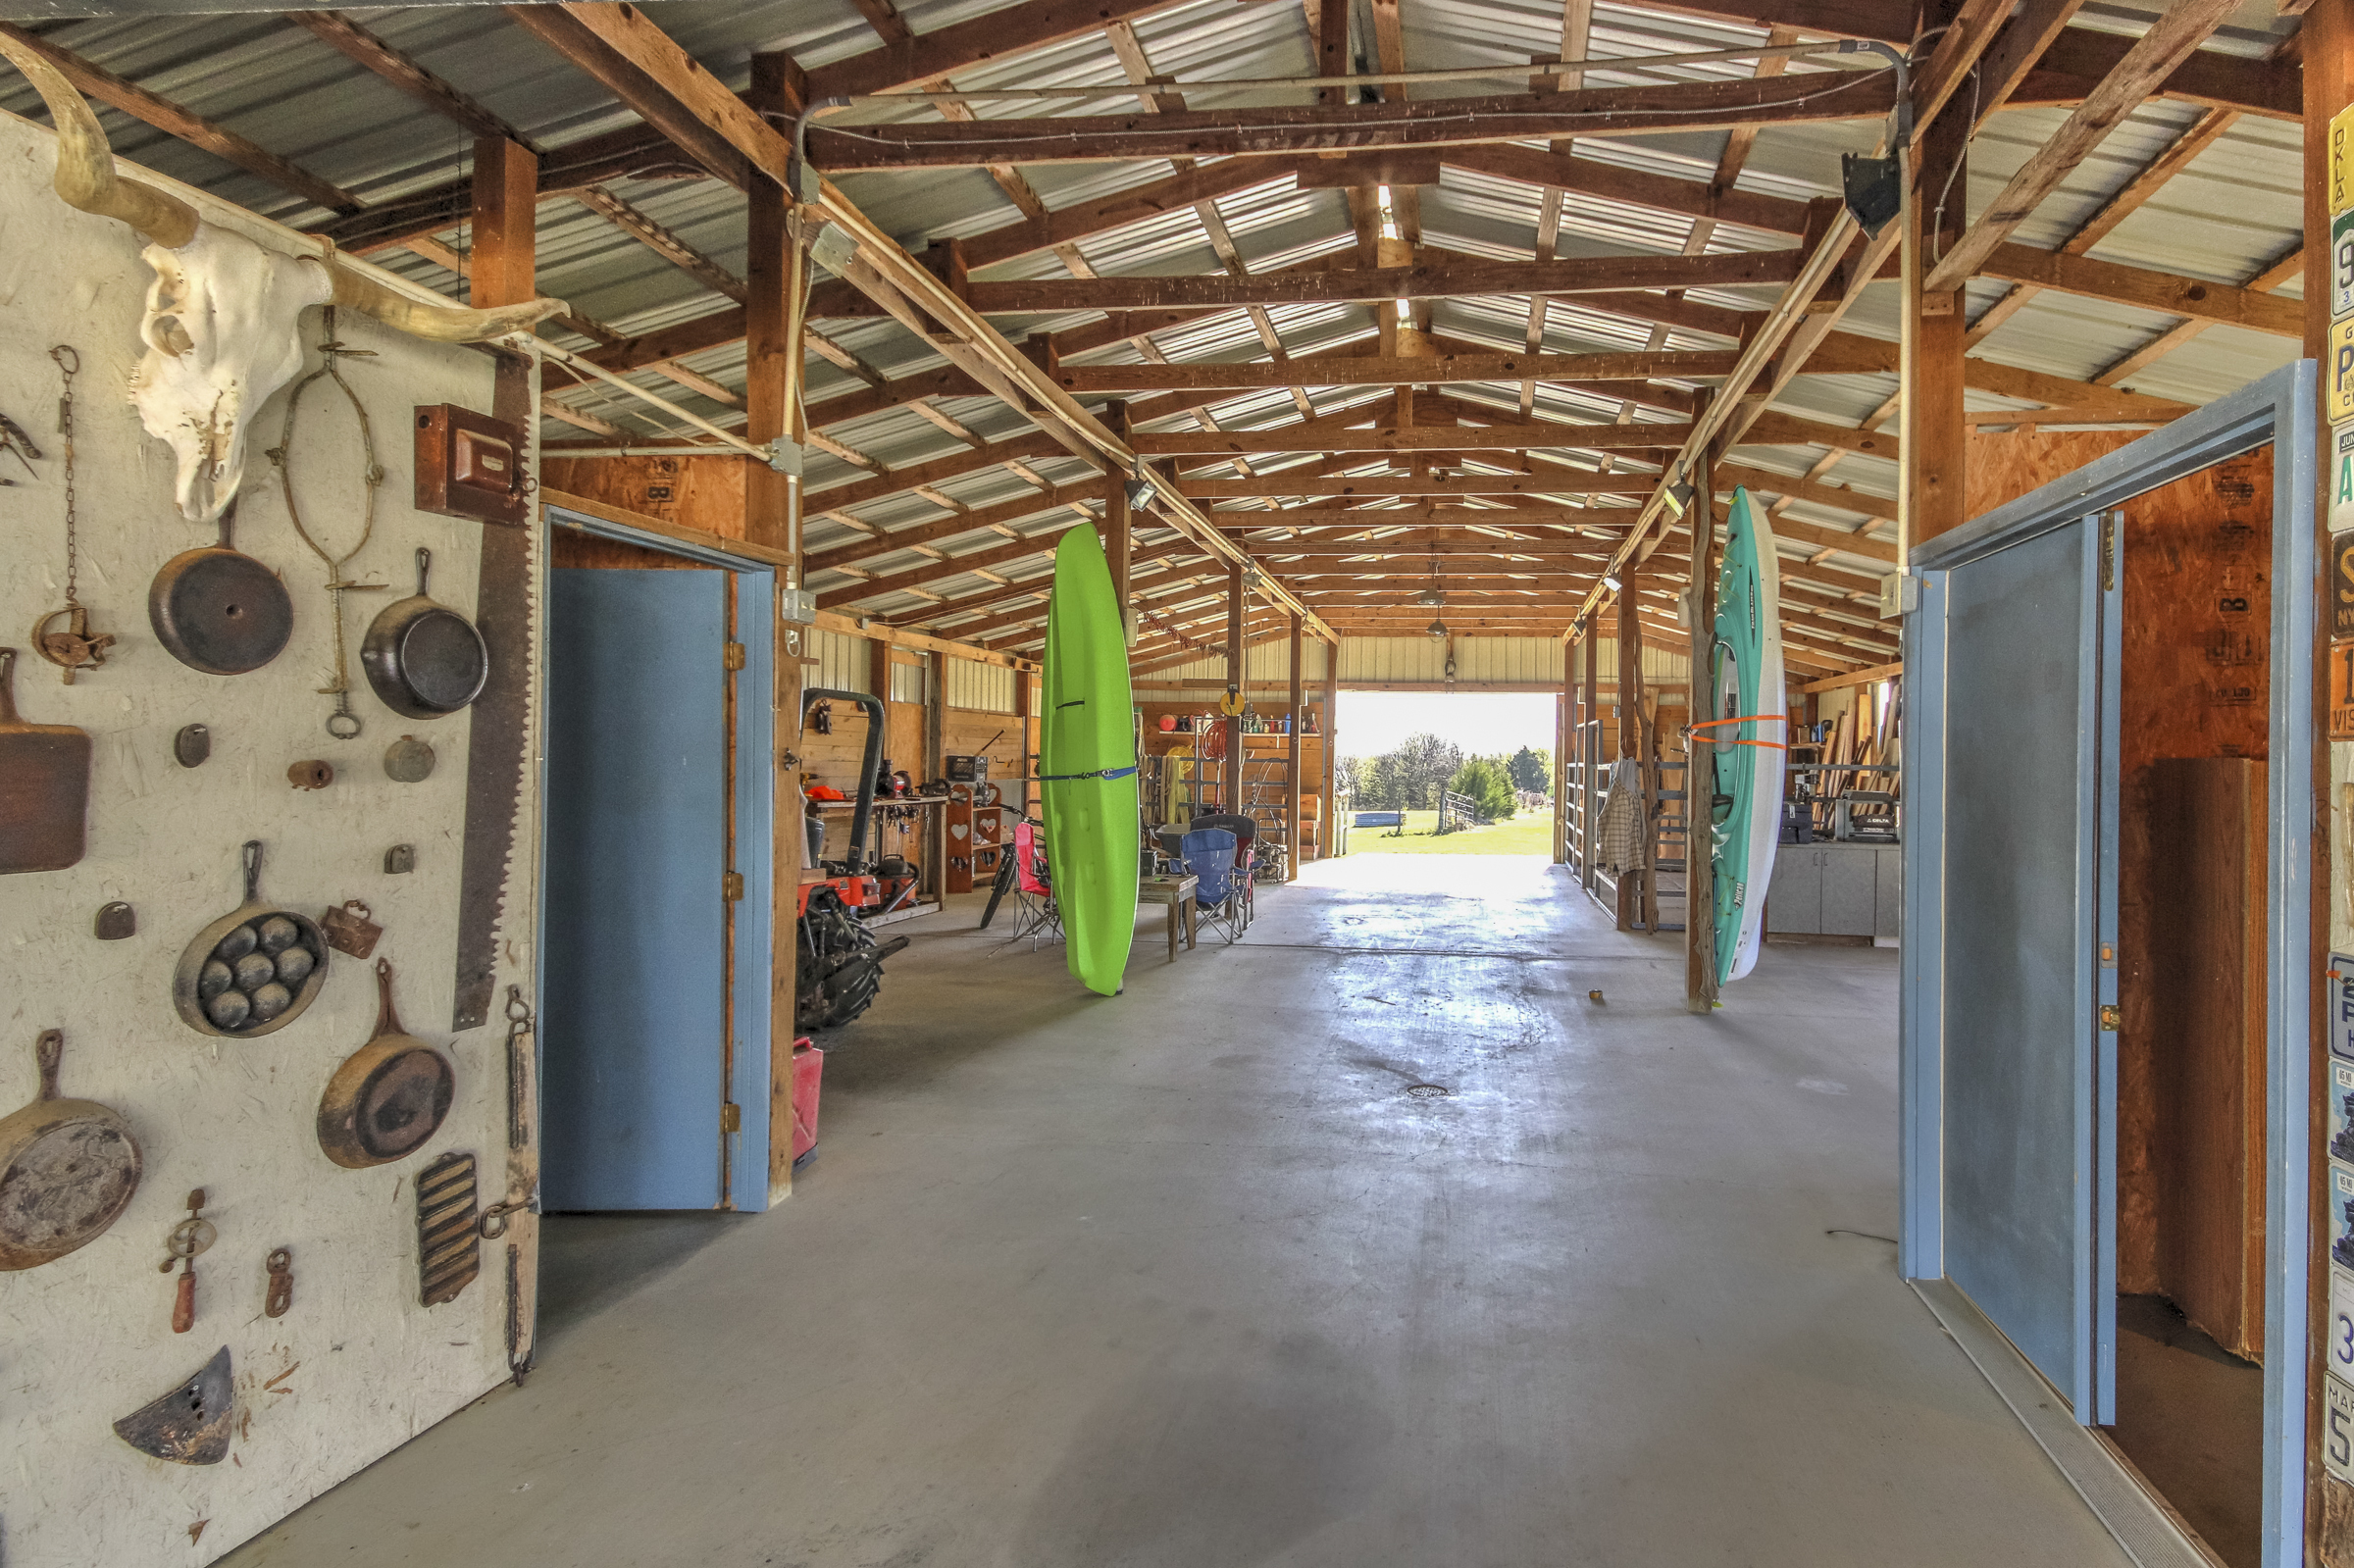 8-Stall Center-Aisle Horse Barn Now Used as a Shop